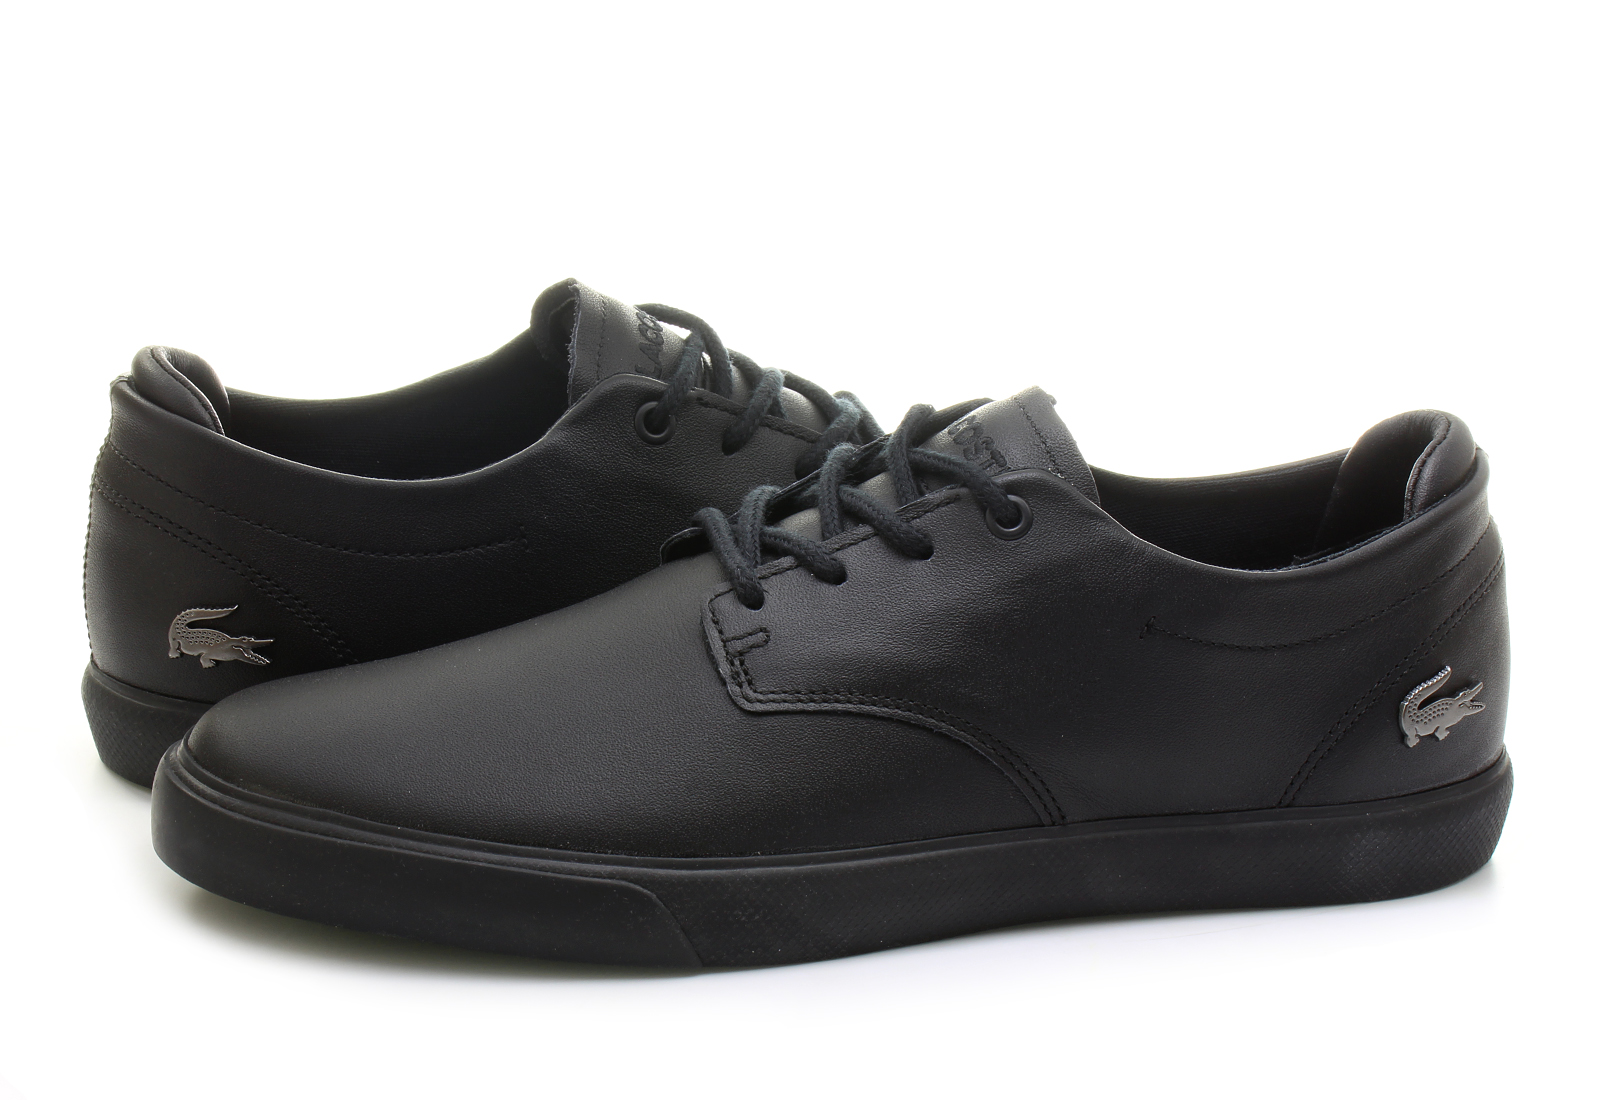 Lacoste Black Boat Shoes